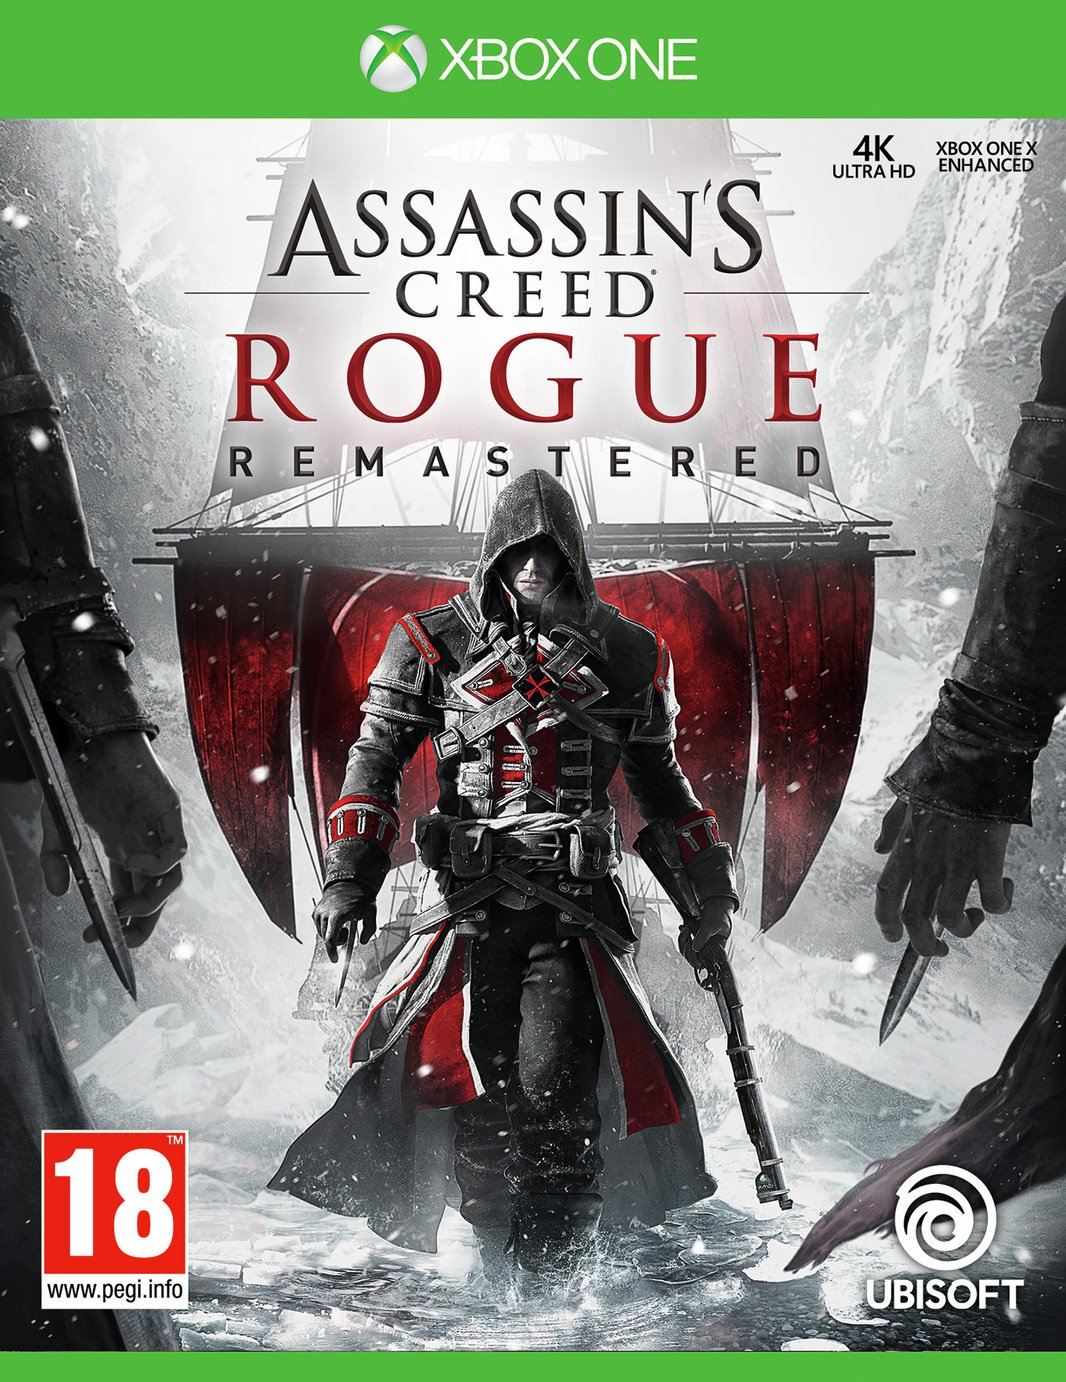 Assassin's Creed Rogue HD Xbox One Game